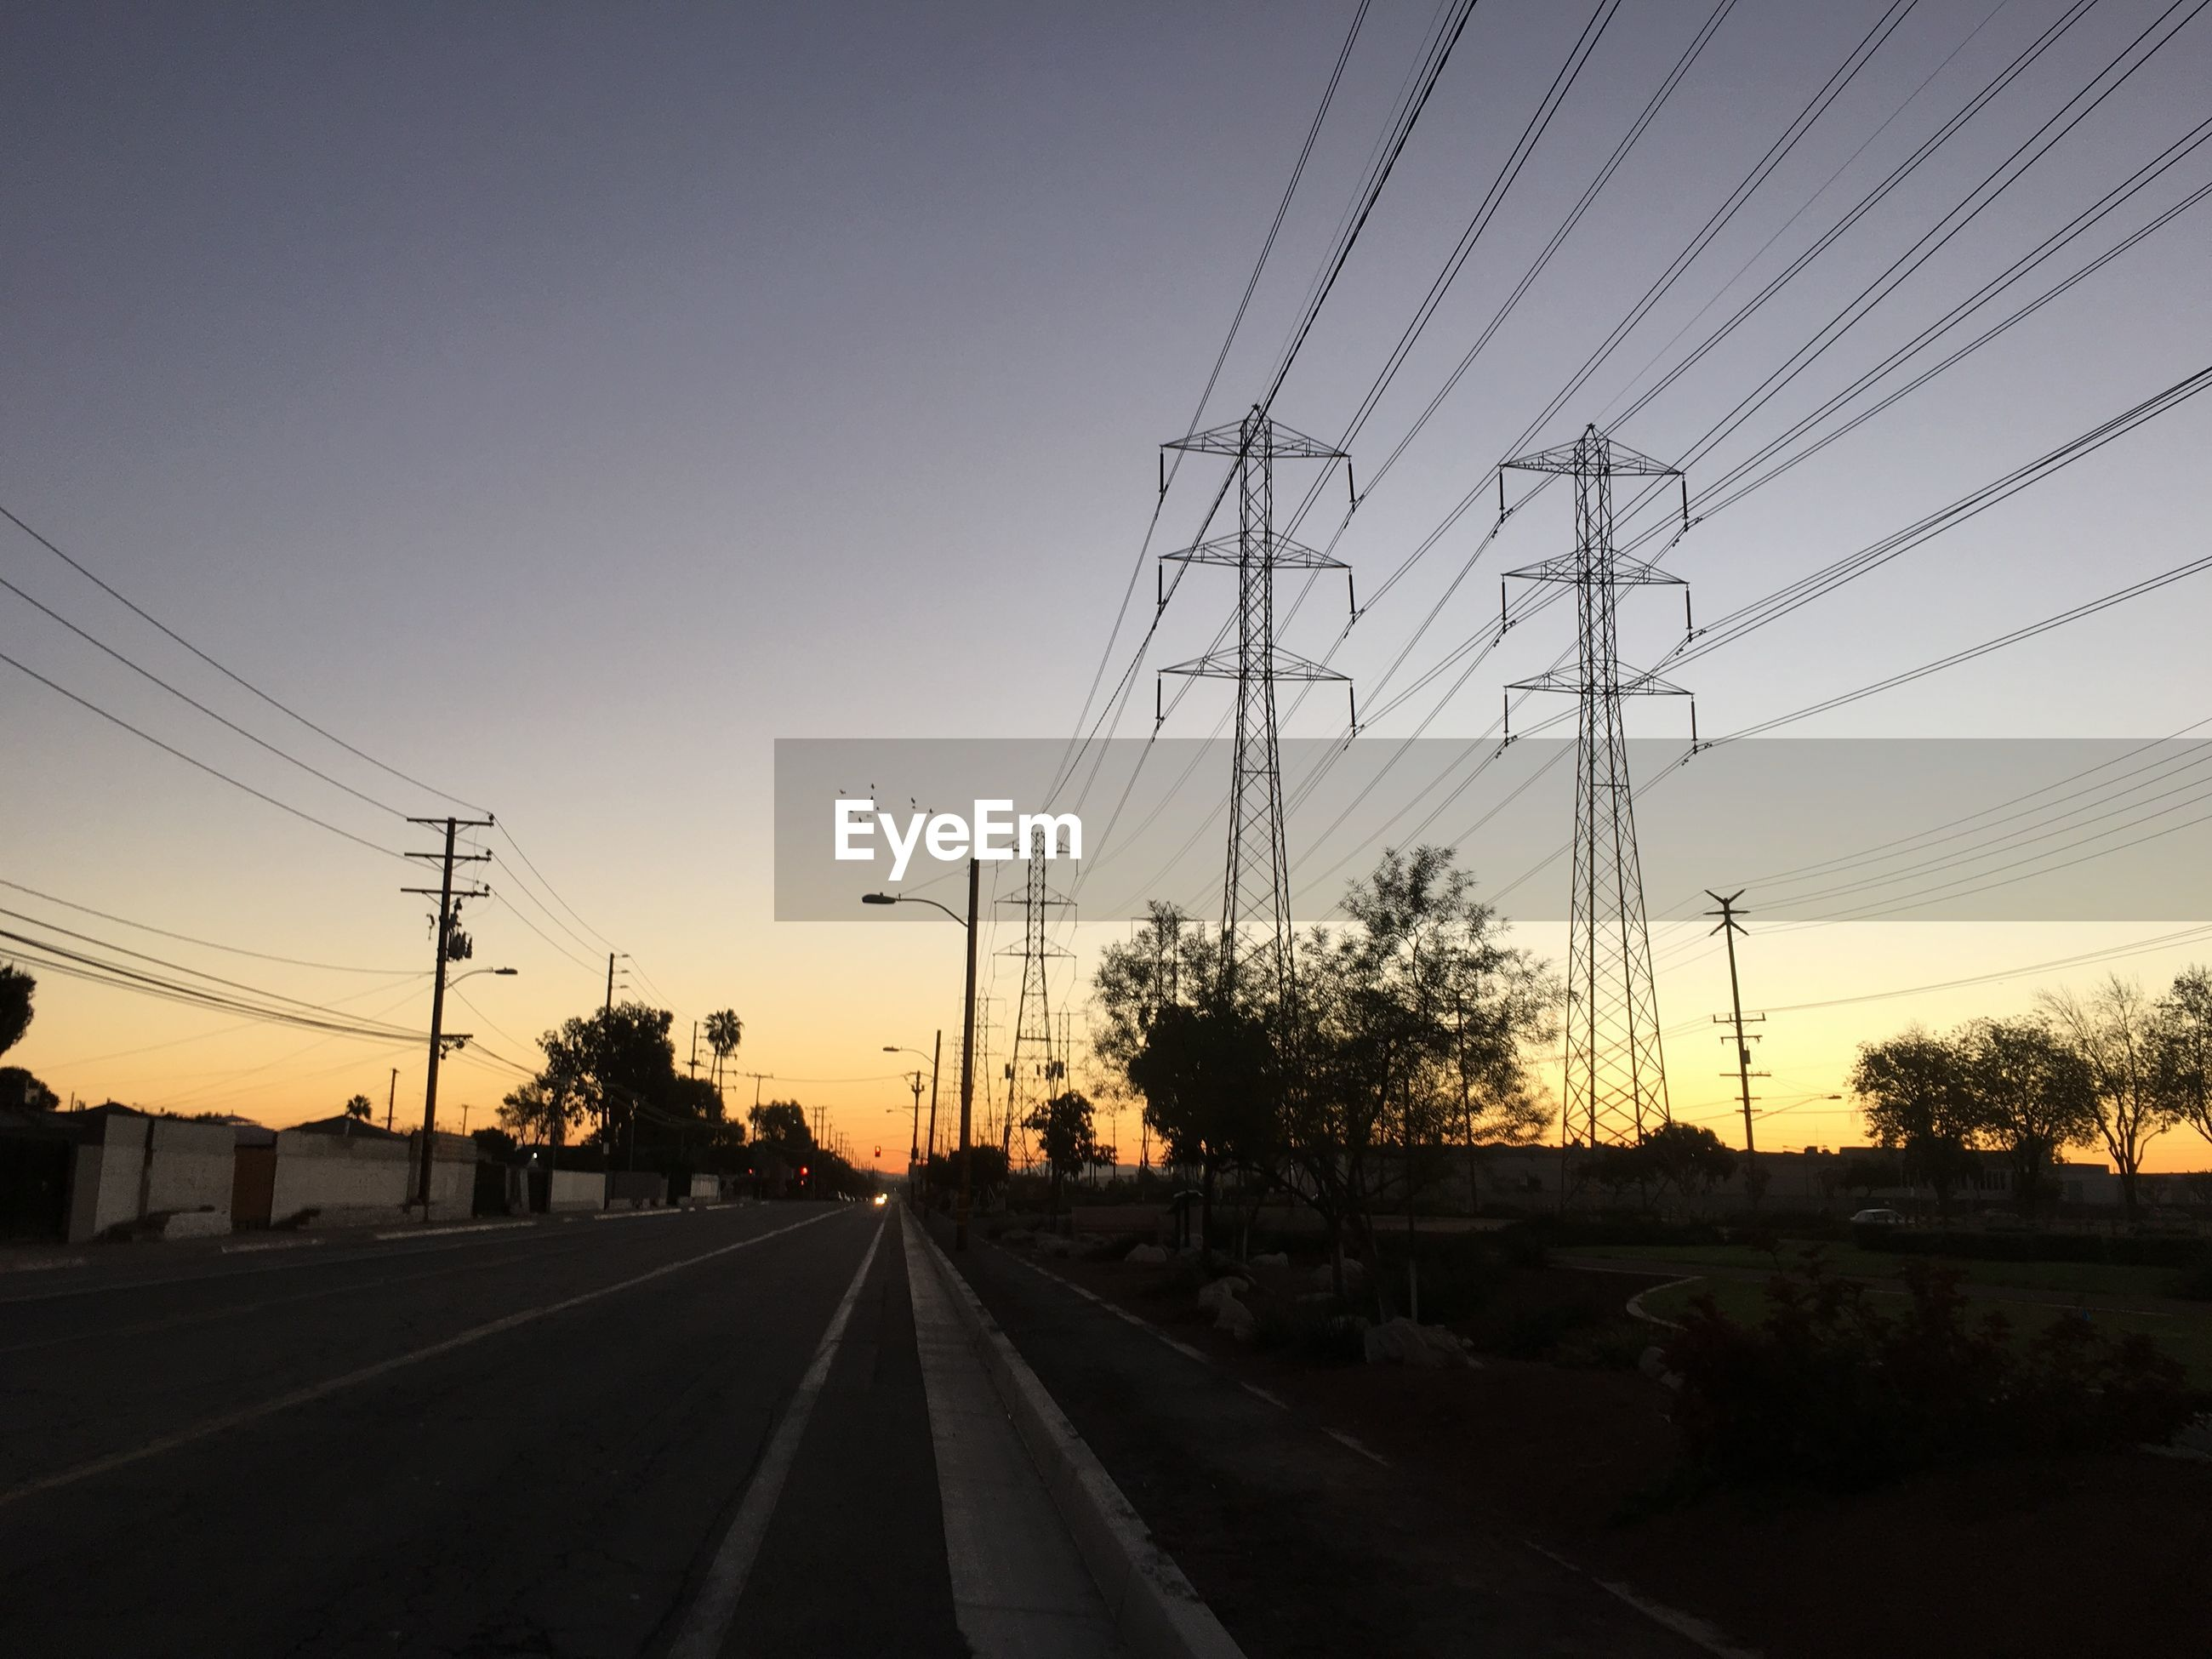 Low angle view of electricity pylons by road against sky during sunset